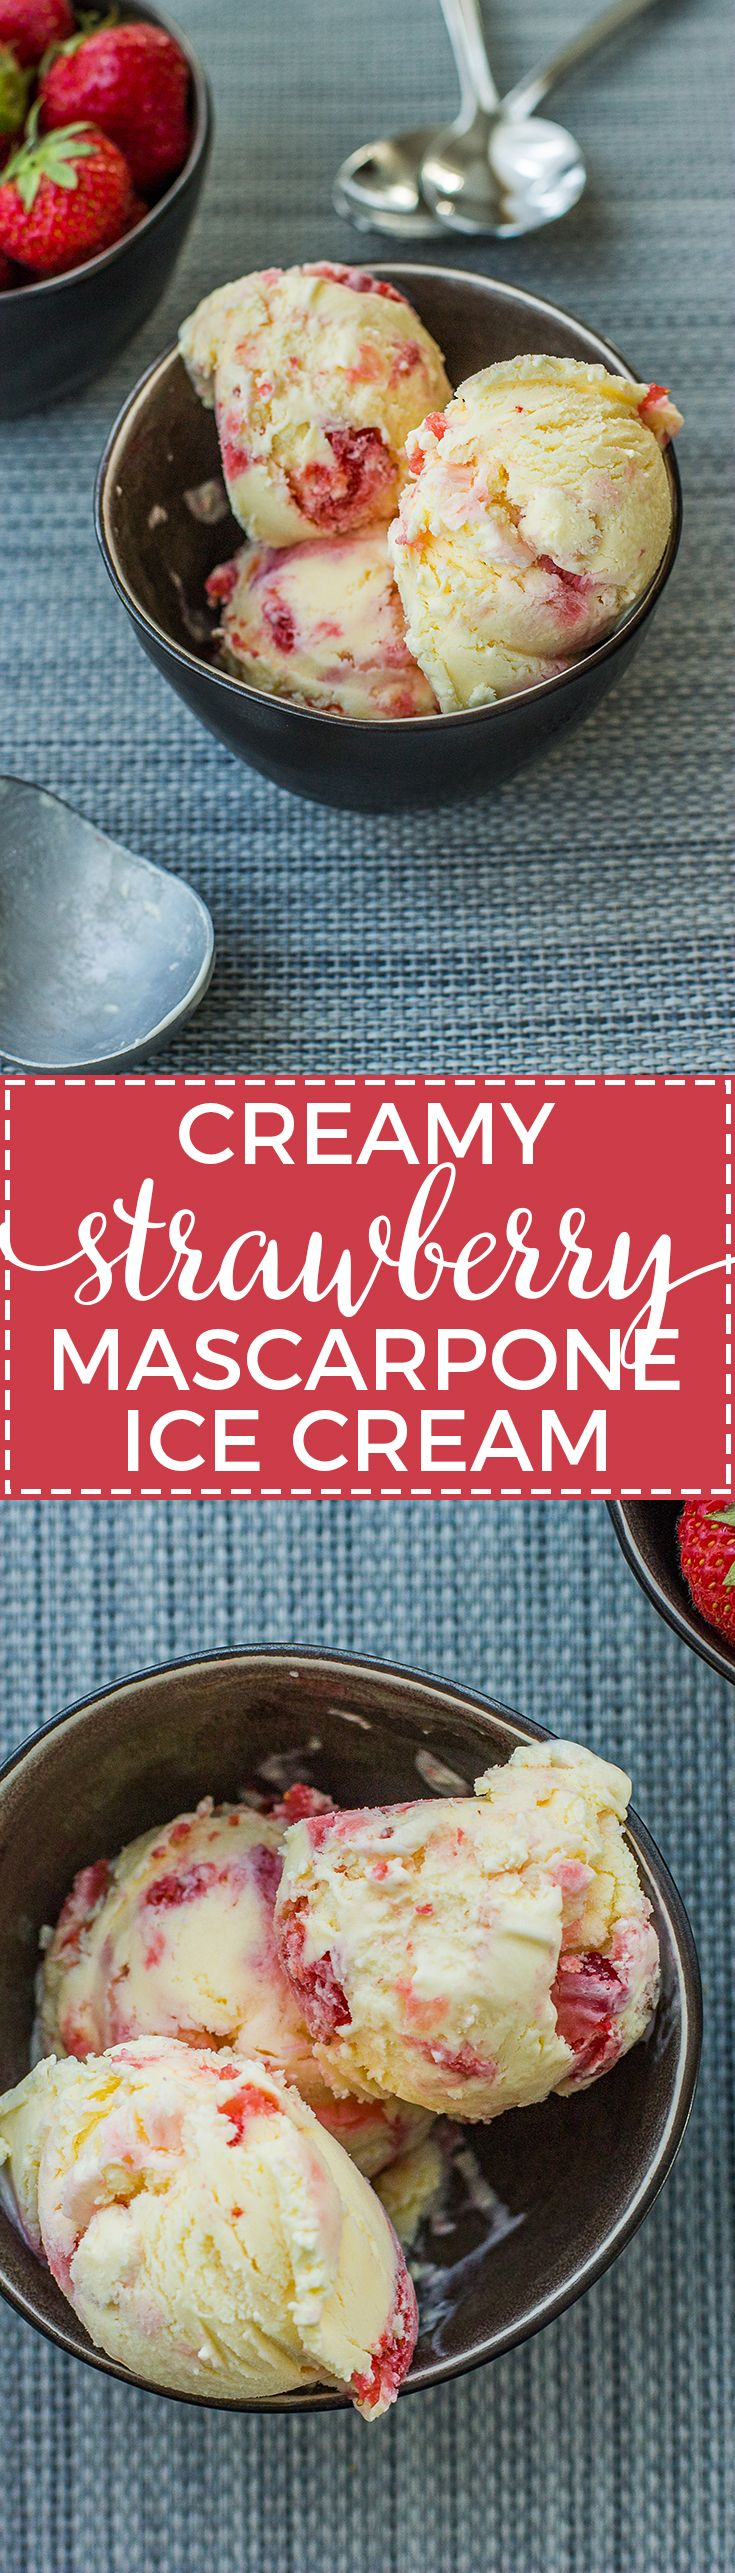 Homemade strawberry mascarpone ice cream is a creamy, refreshing summer treat. An impressive dessert for any BBQ or cookout. via @nourishandfete